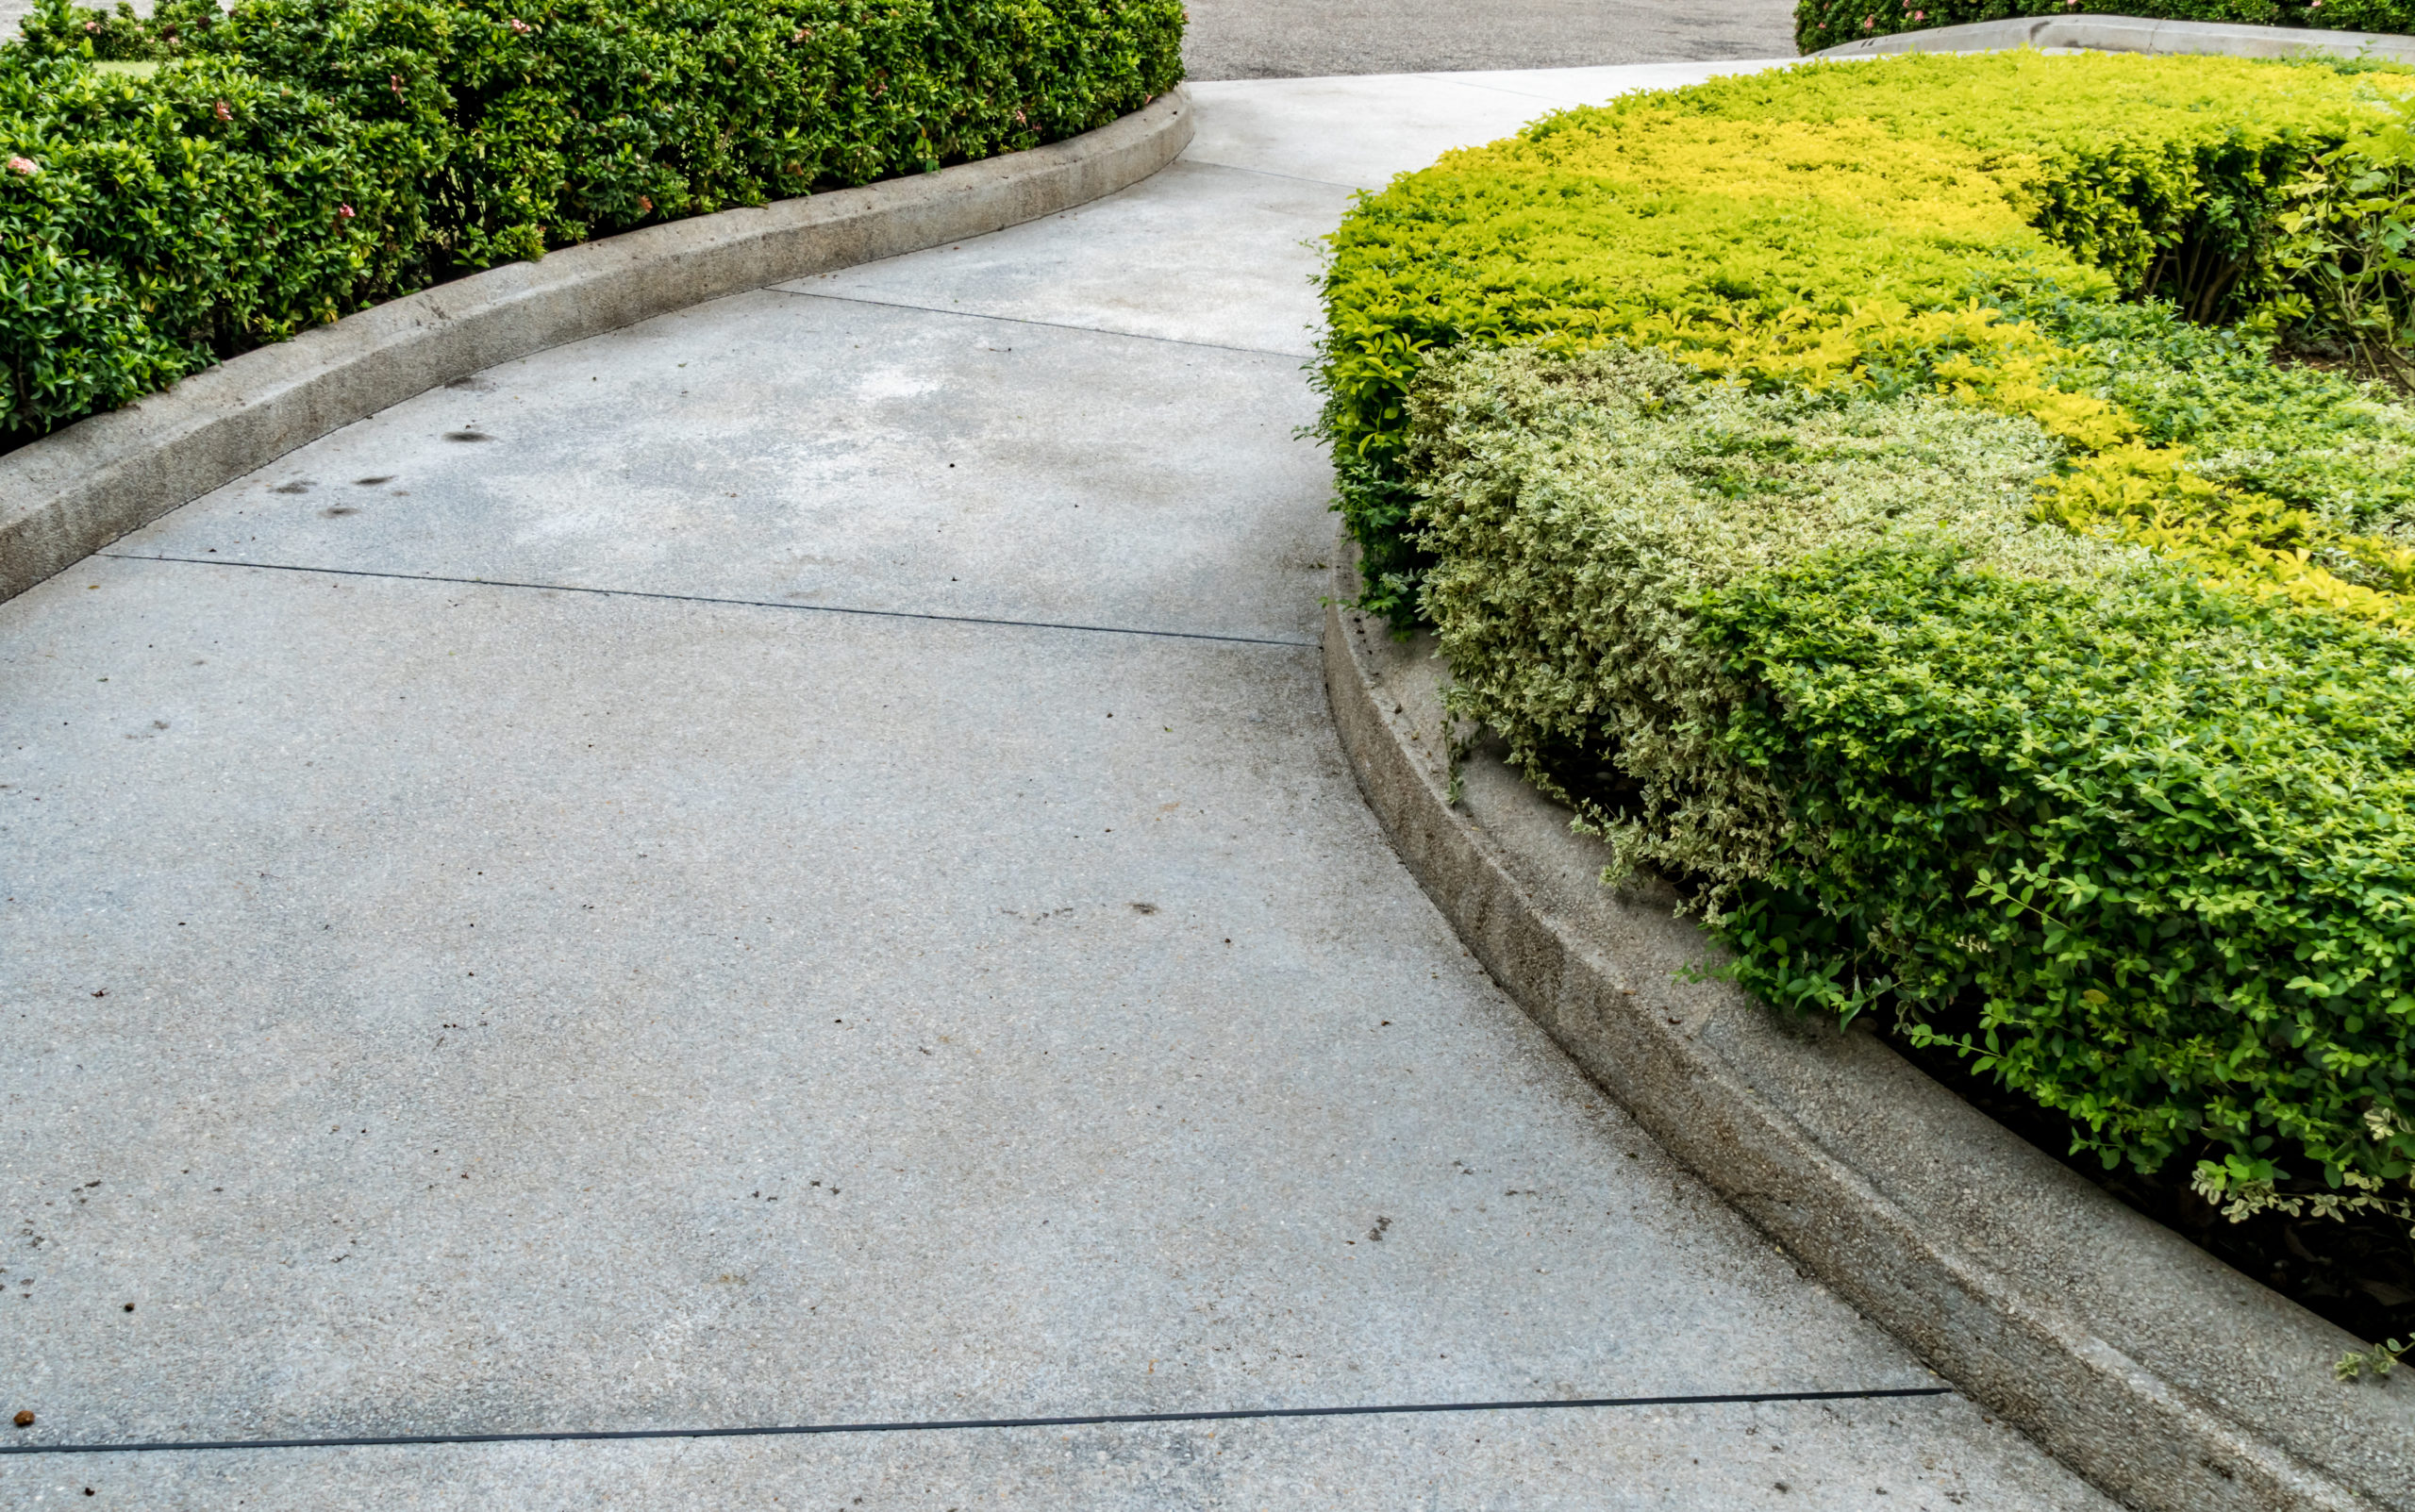 This is an image of a concrete walkway in between bushes.